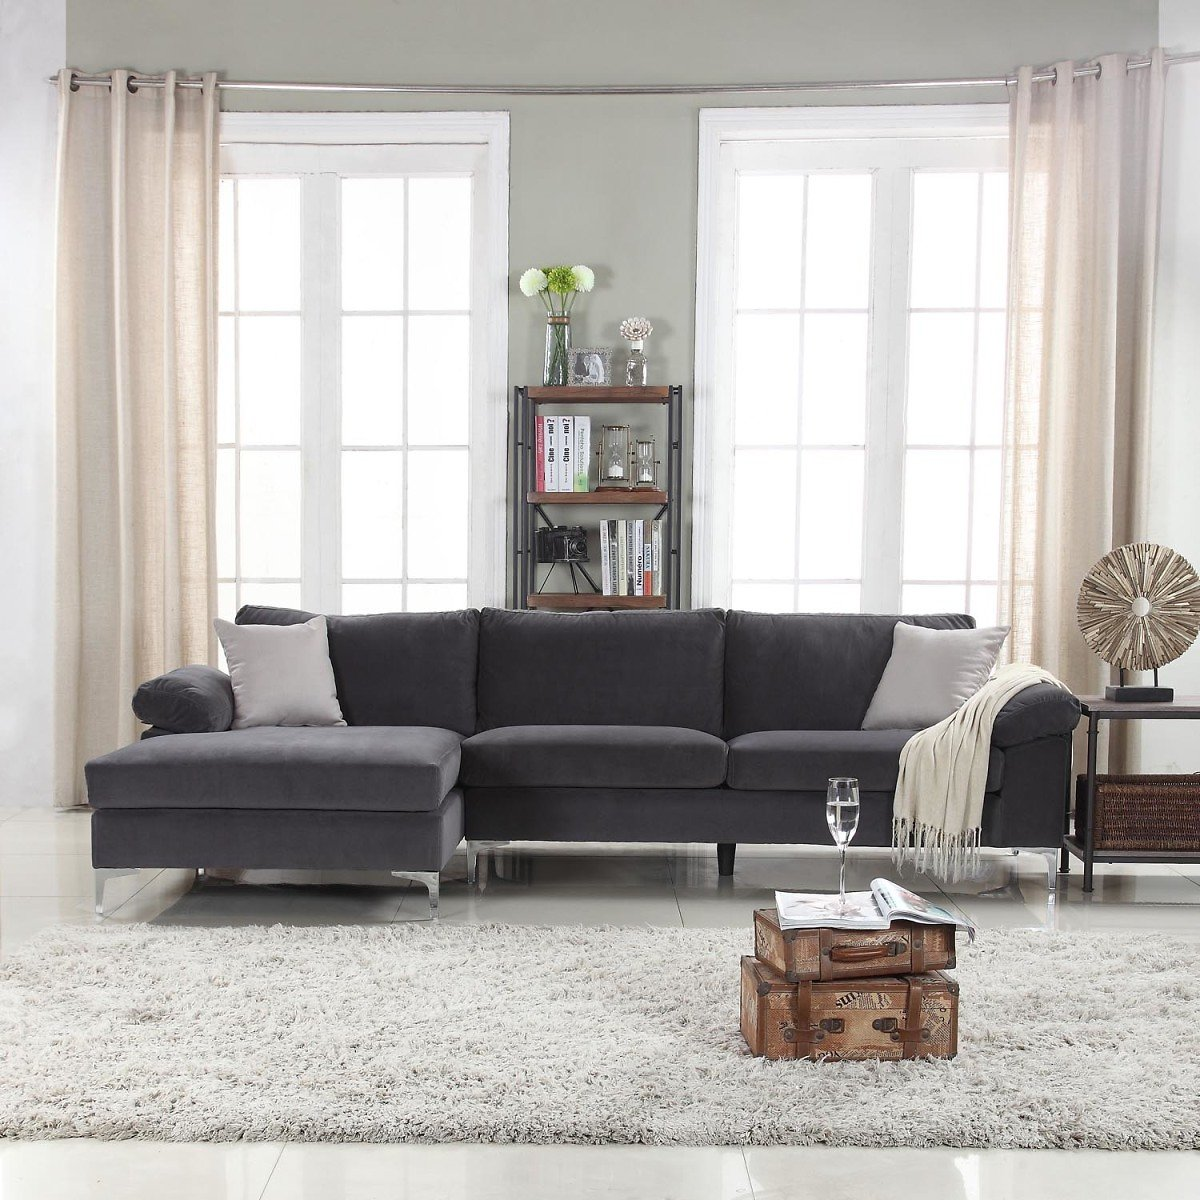 Mobilis Modern Large Microfiber Velvet Fabric L-Shape Sectional Sofa with Extra Wide Chaise Lounge, Gray